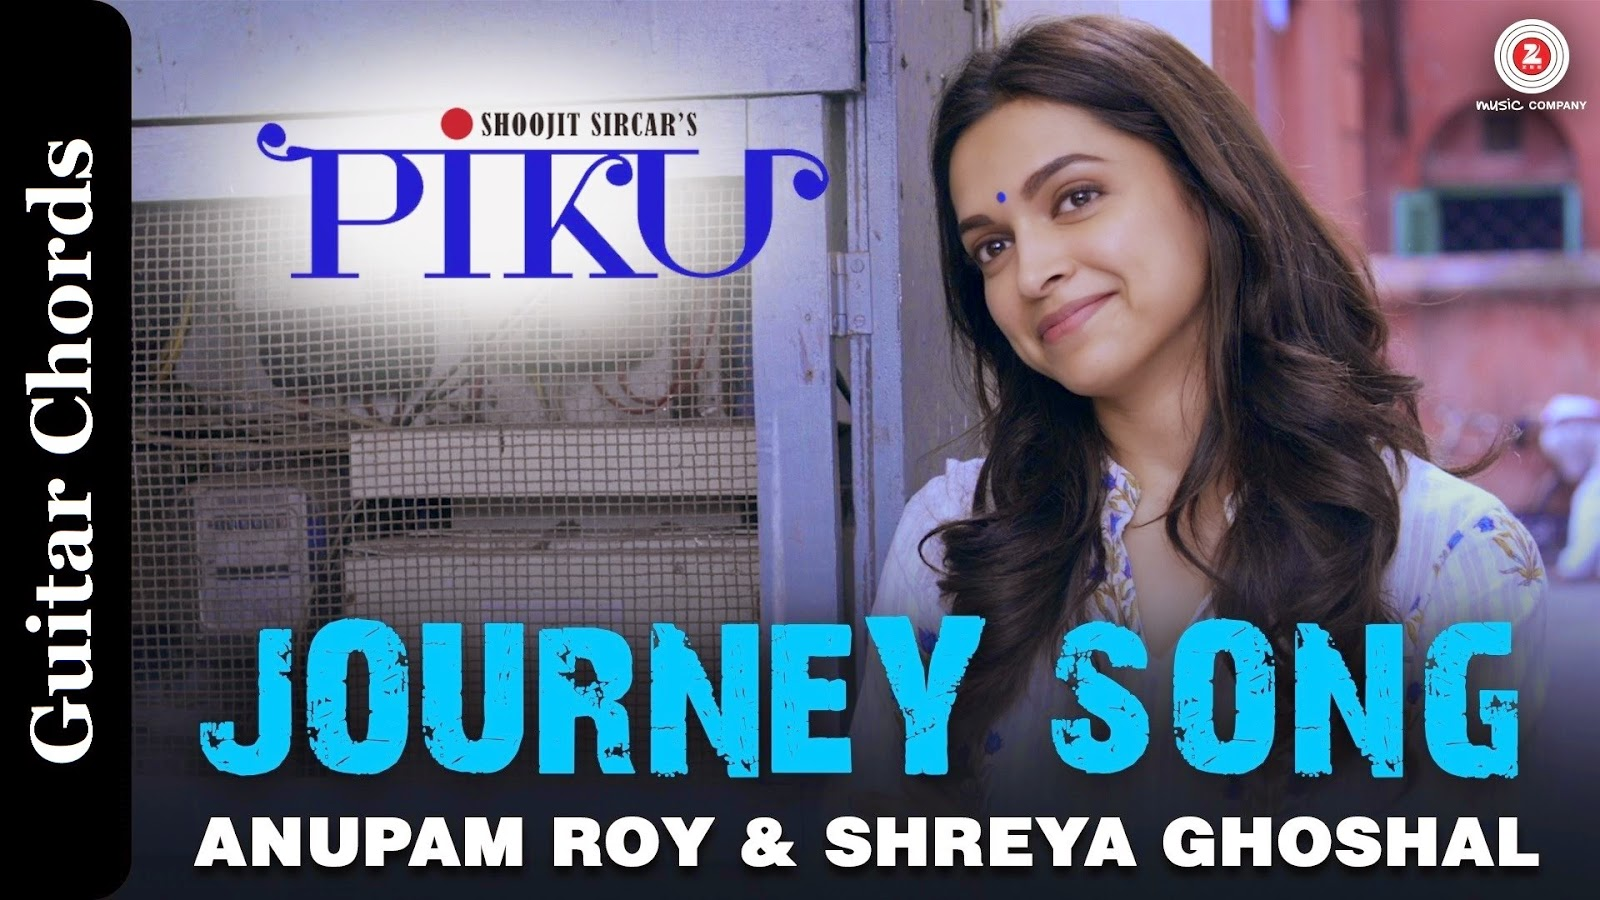 Journey Song Chords - PIKU Anupam Roy, Shreya Ghoshal